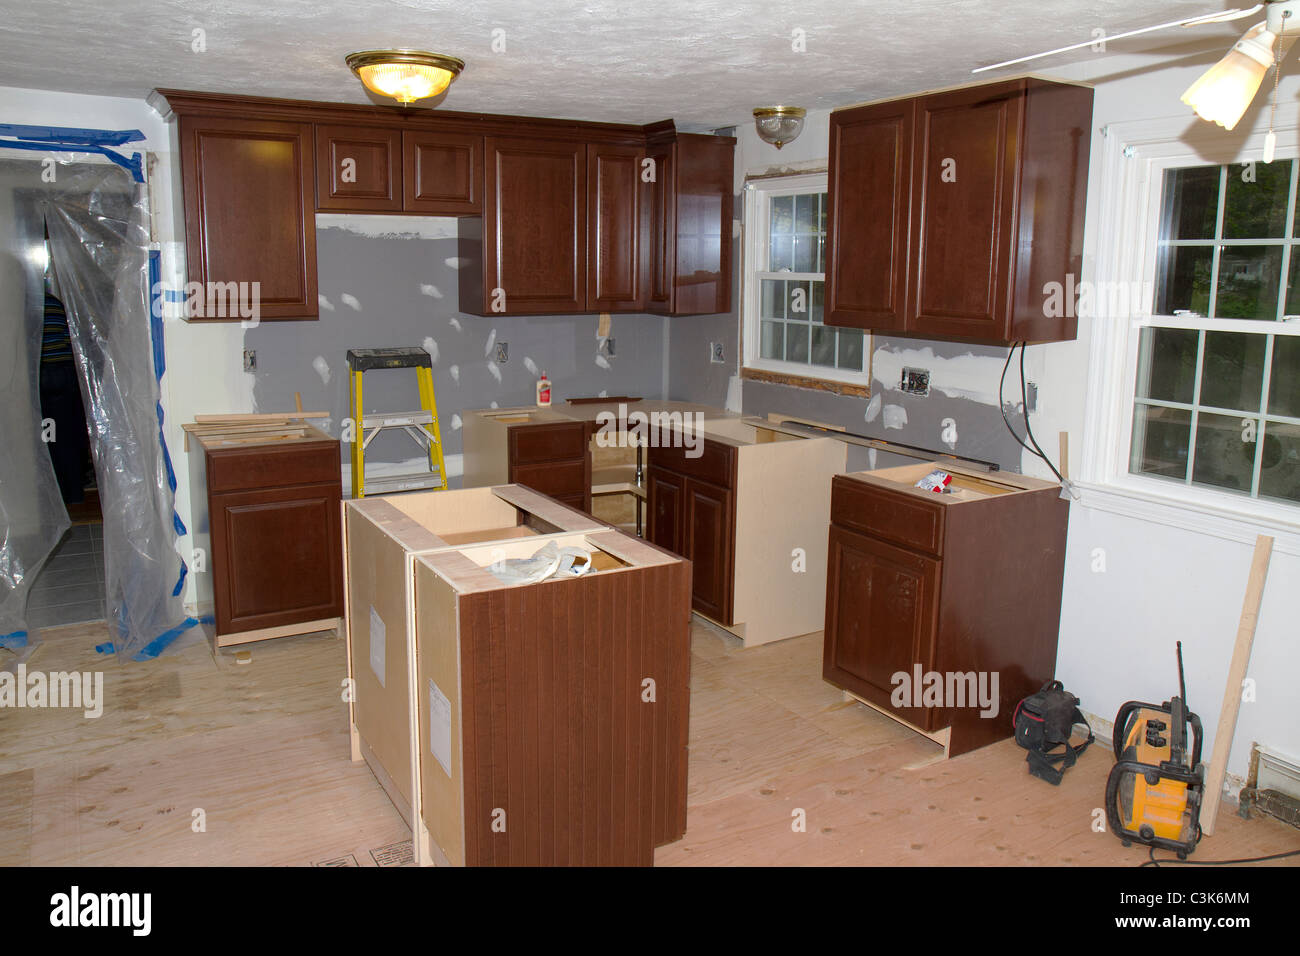 american kitchen cabinets base 1960 39s style home during remodeling new